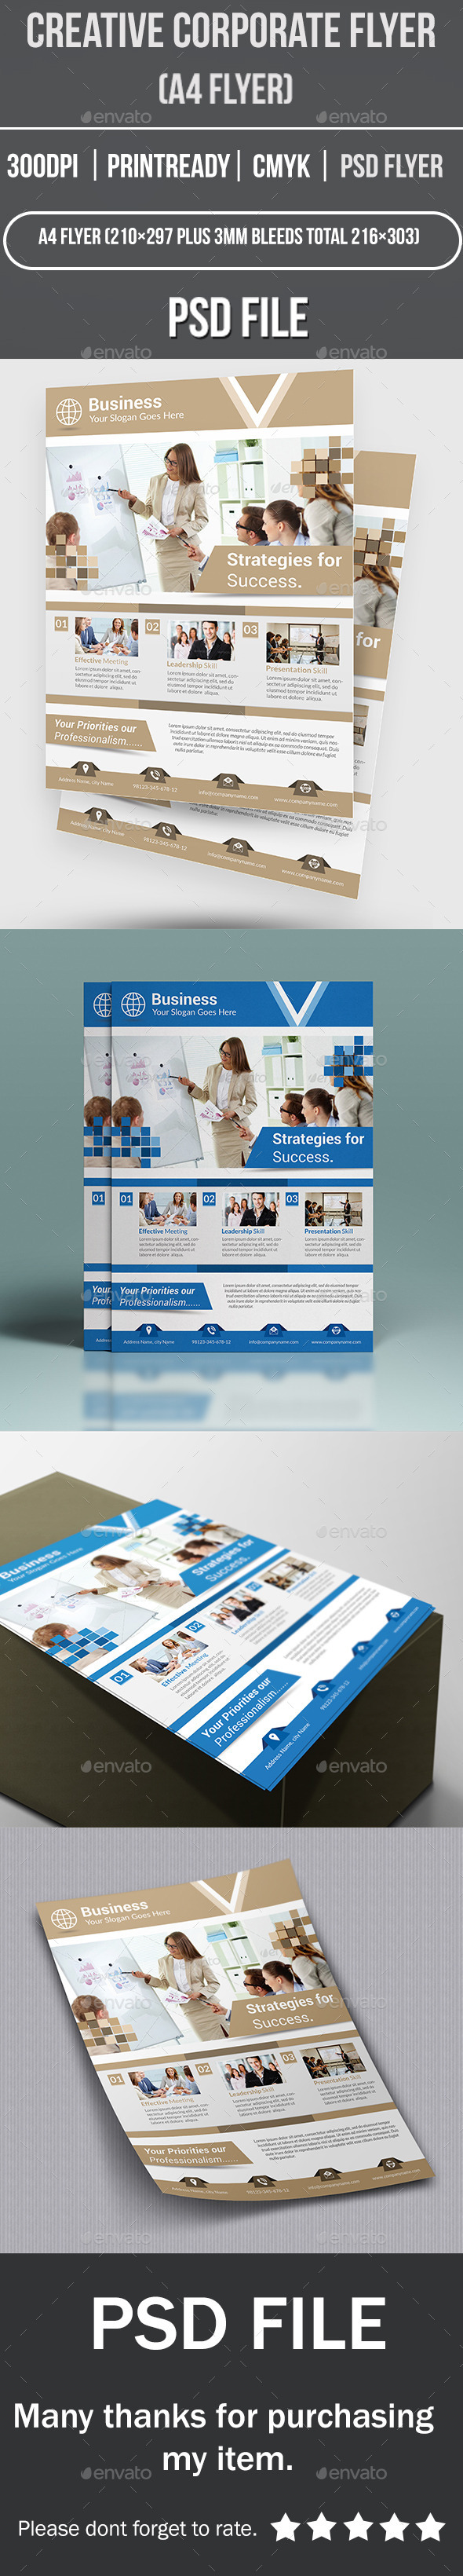 GraphicRiver Creative Corporate Flyer 11255529